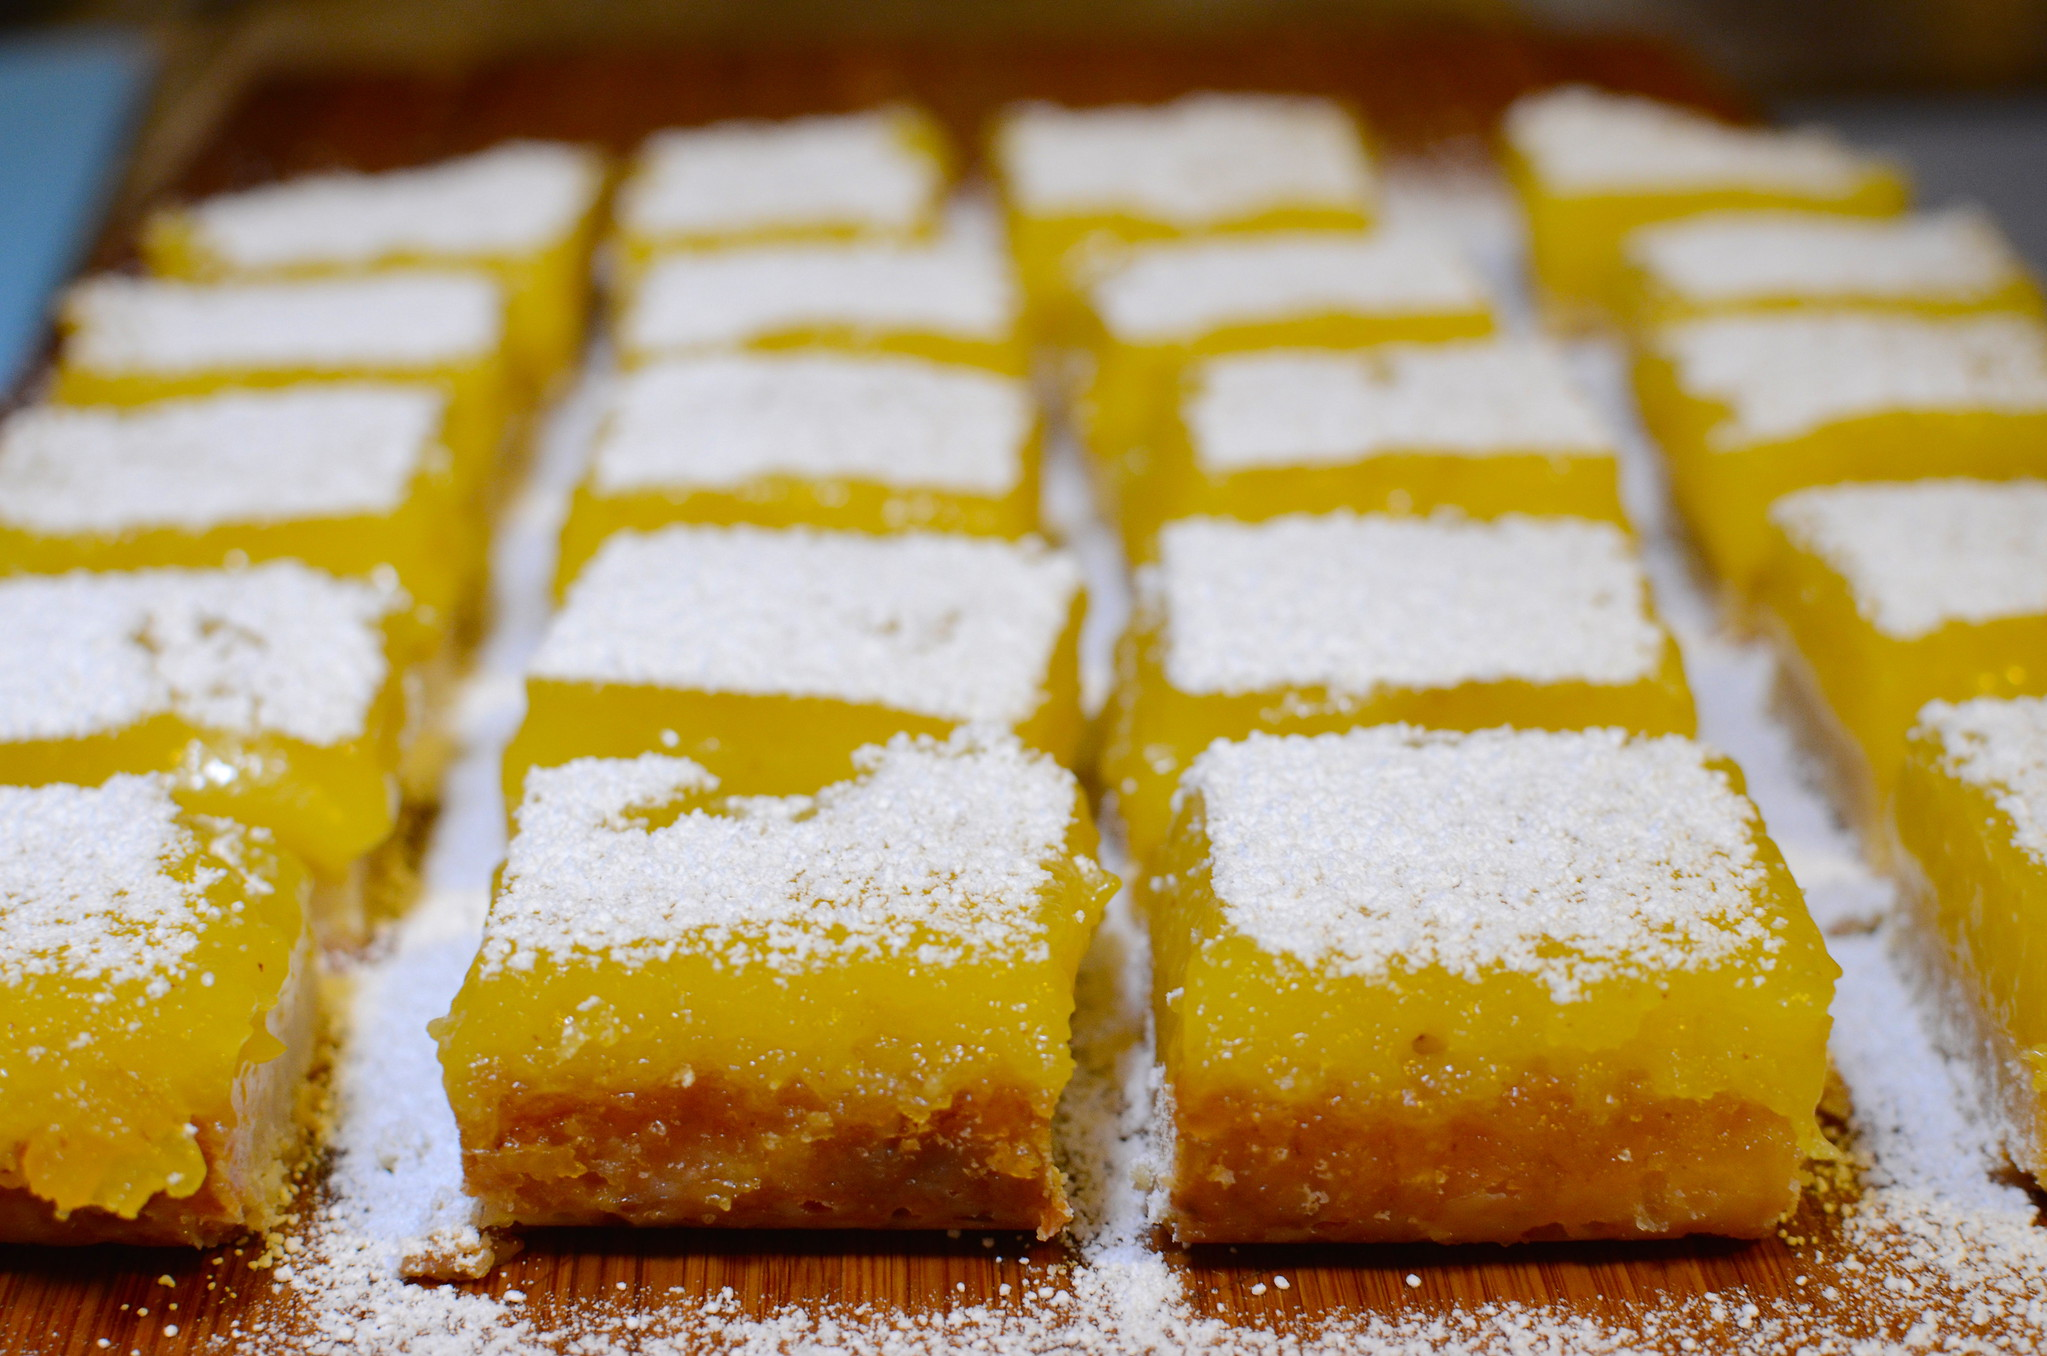 Old-Fashioned Lemon Bars Recipe With Shortbread Crust